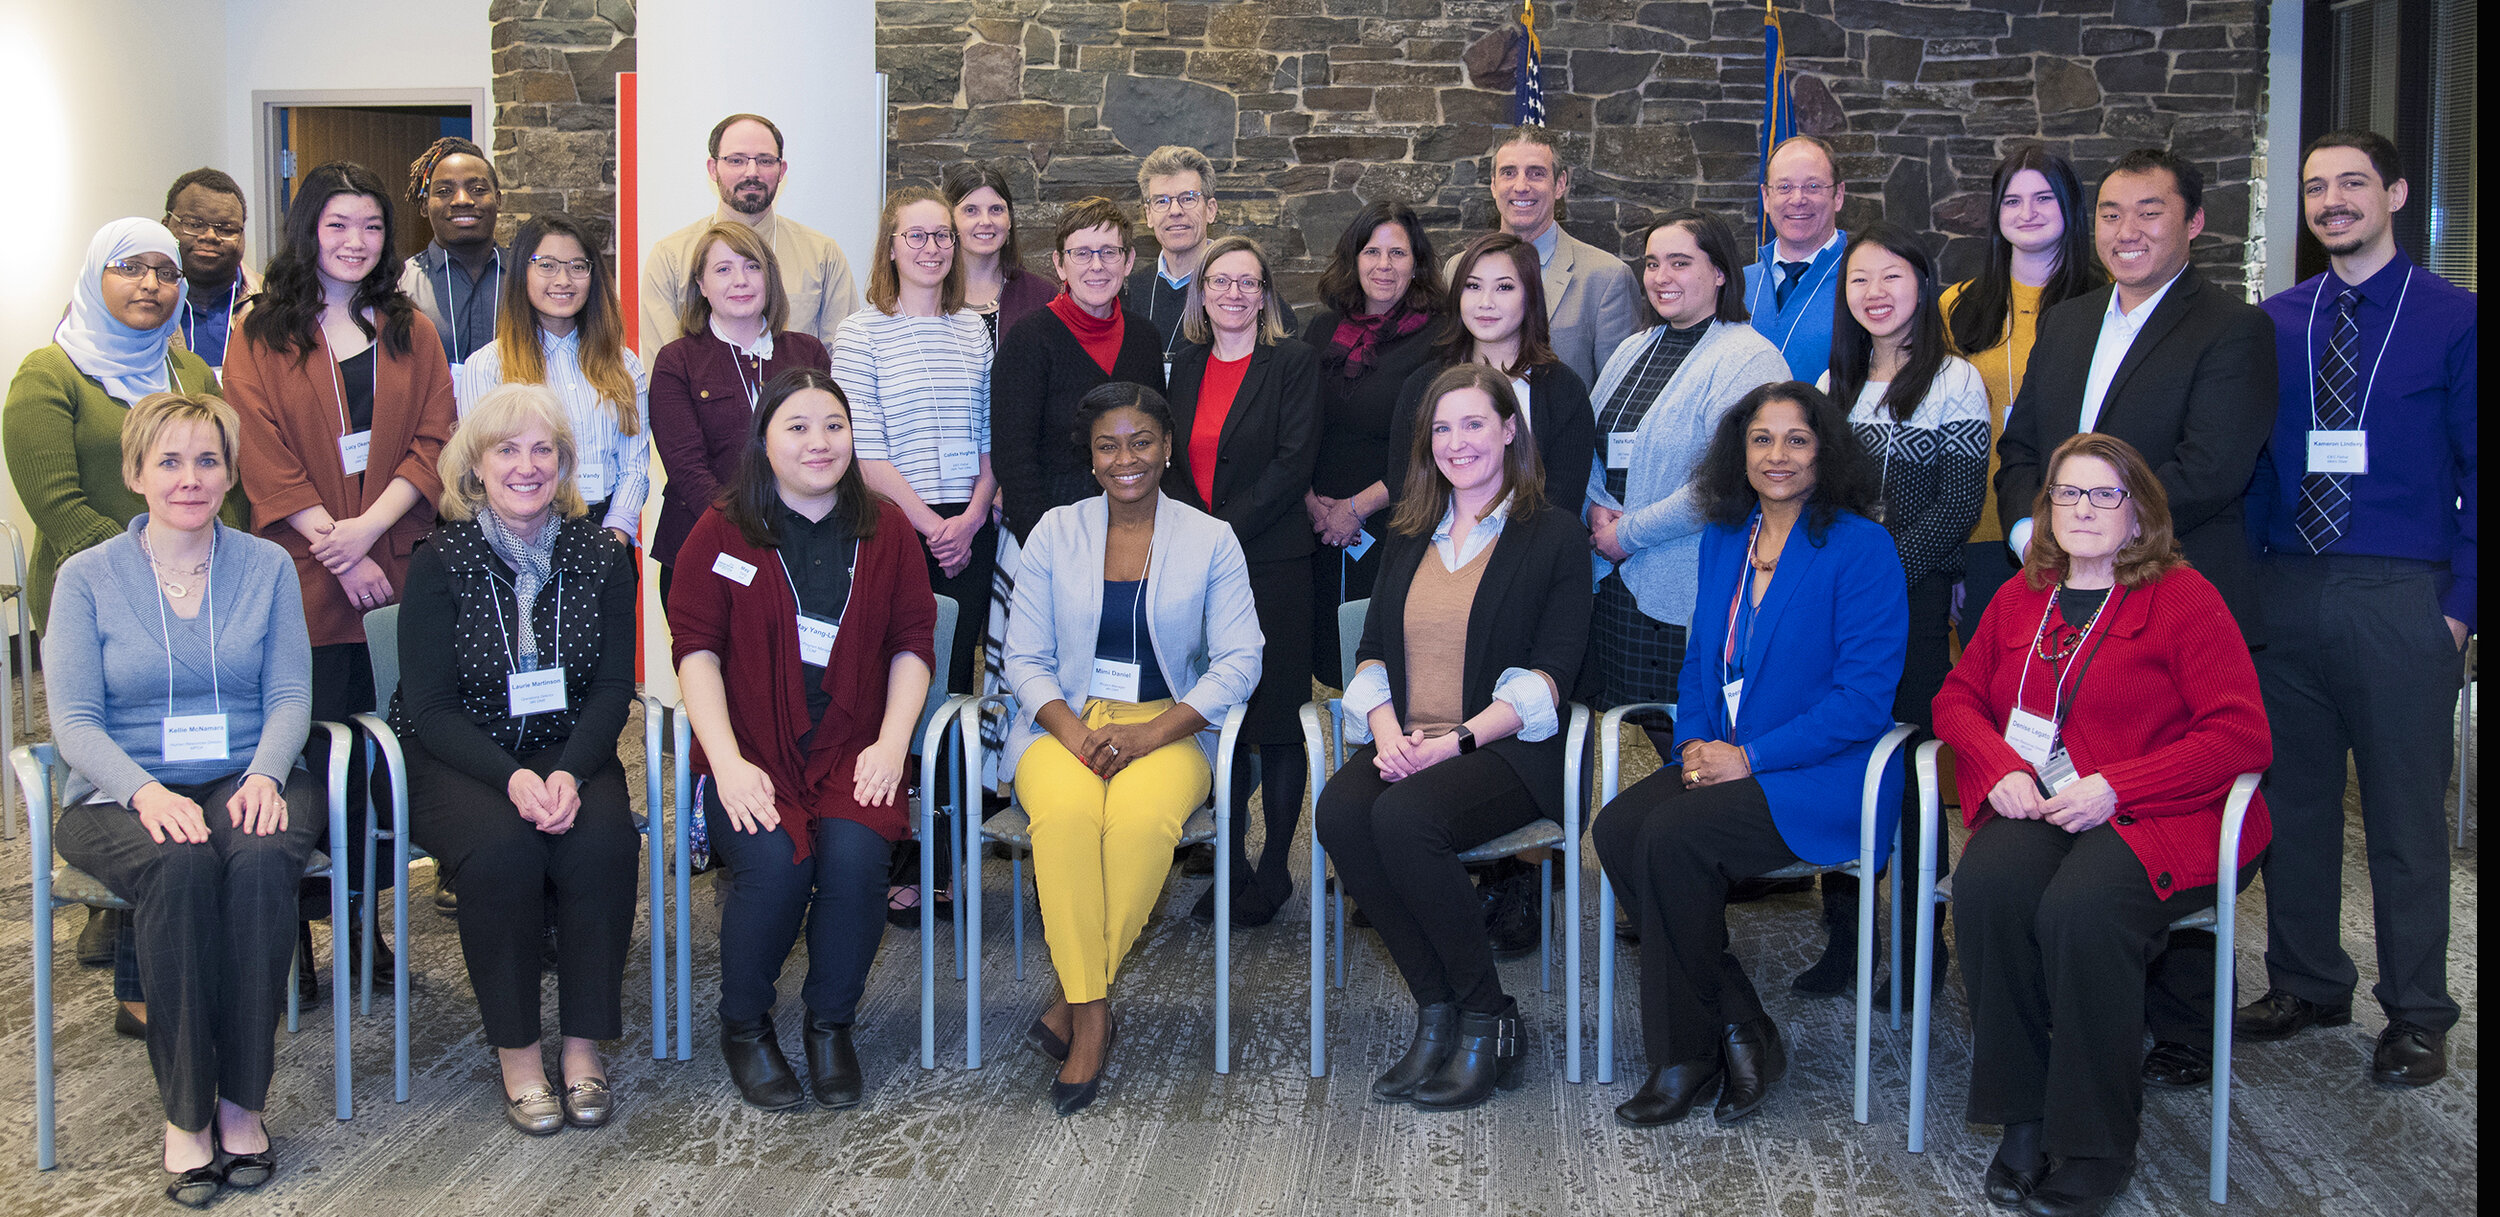 The first cohort of the Increasing Diversity in Environmental Careers (IDEC) program included 16 college students who posed during a visit with commissioners from the Minnesota Department of Natural Resources, Minnesota Pollution Control Agency, and Board of Water & Soil Resources.